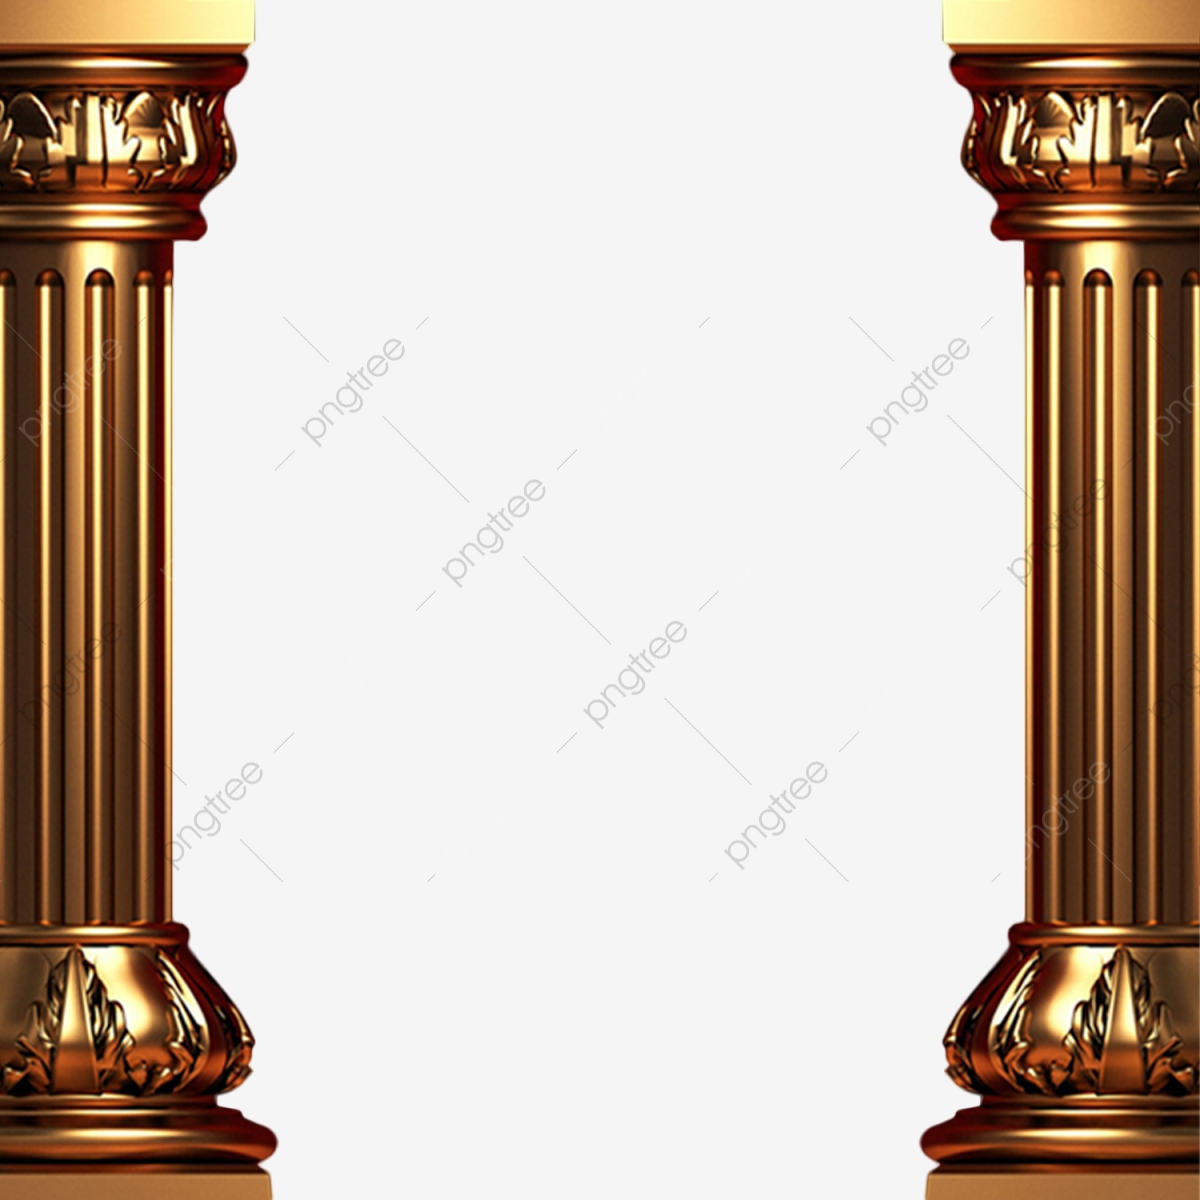 Golden Pillar Png, Golden, Pillar, Pillars PNG Transparent.